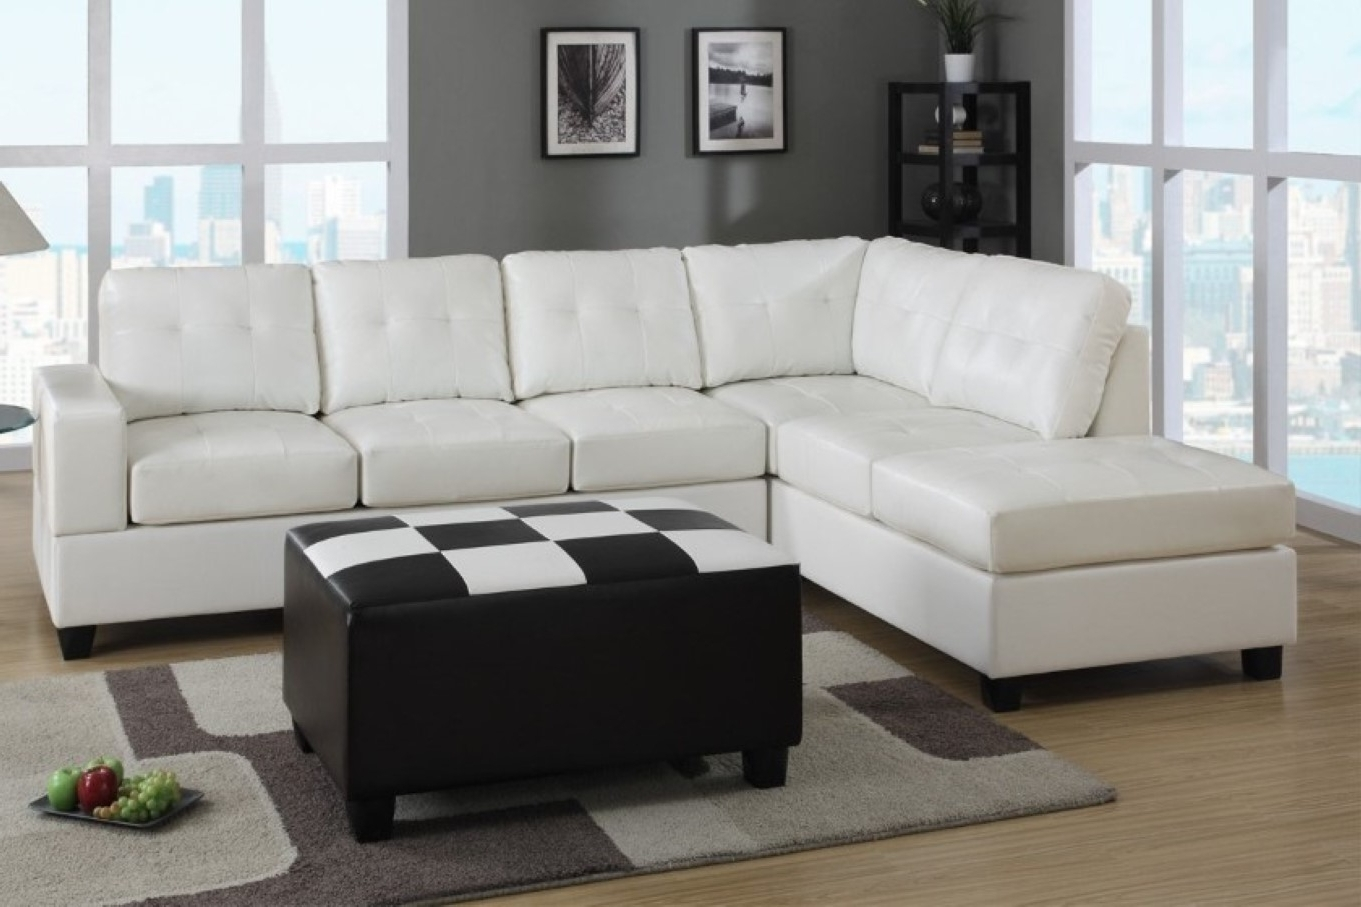 Jennifer Convertibles Sectional Sofas Regarding Famous White Color Modern Leather Sectional Sleeper Sofa Bed With Wooden (View 18 of 20)